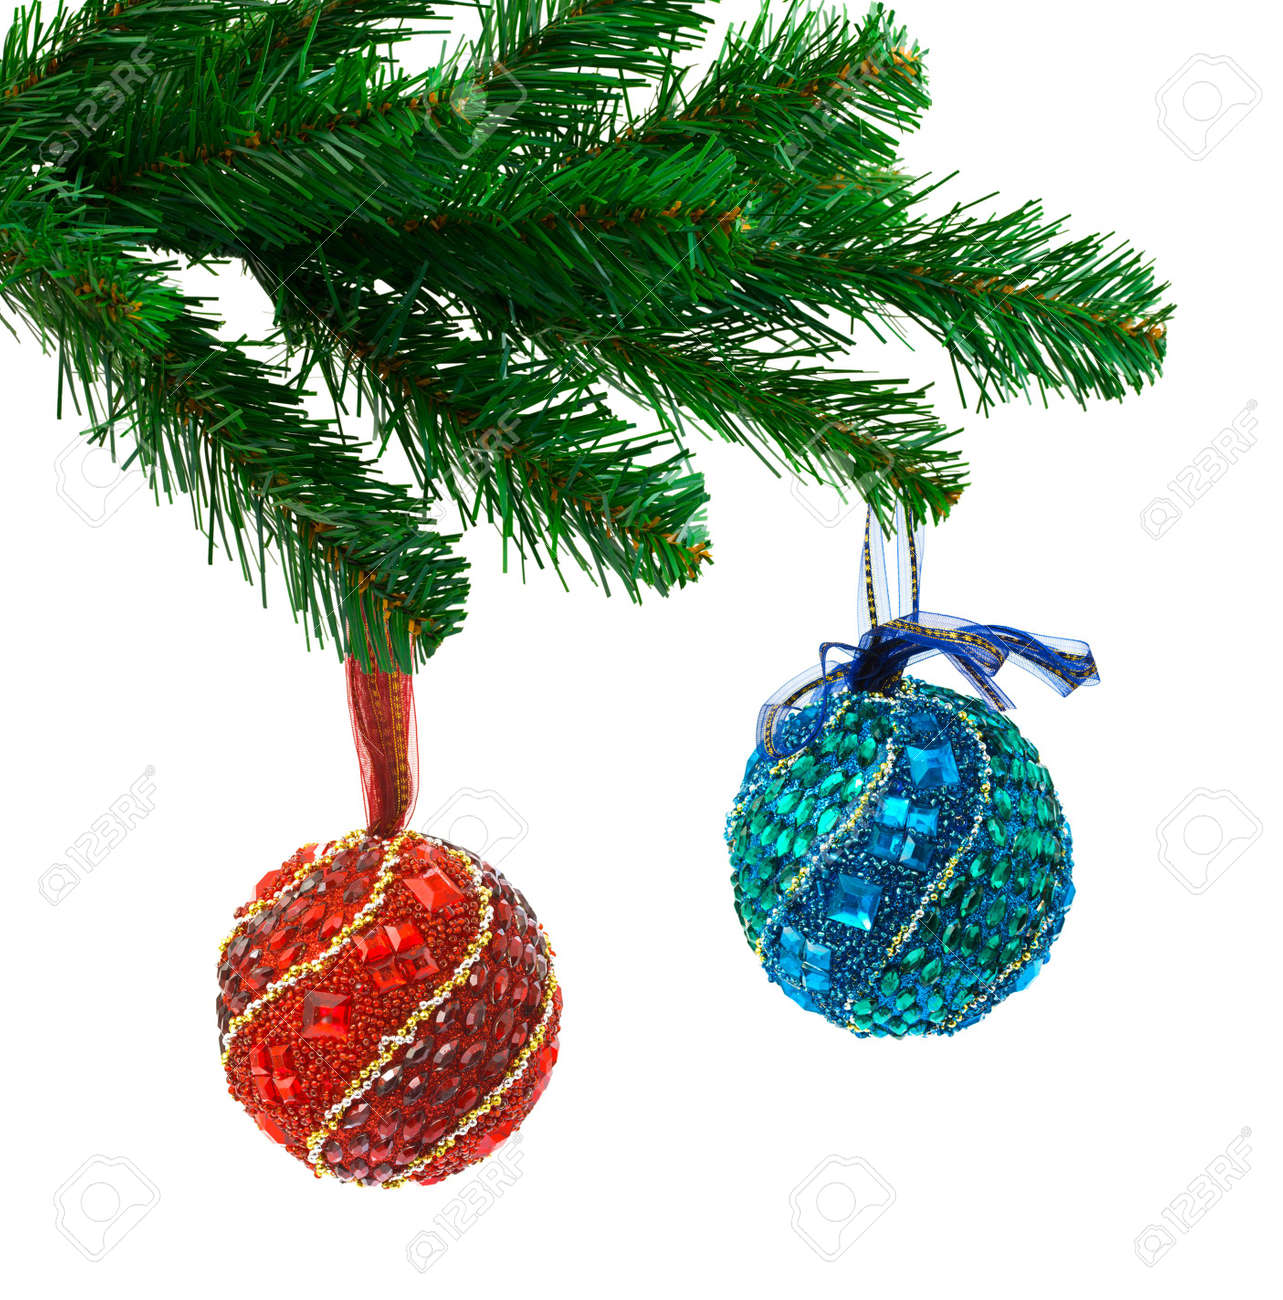 Christmas tree and balls isolated on white background Stock Photo - 5663429